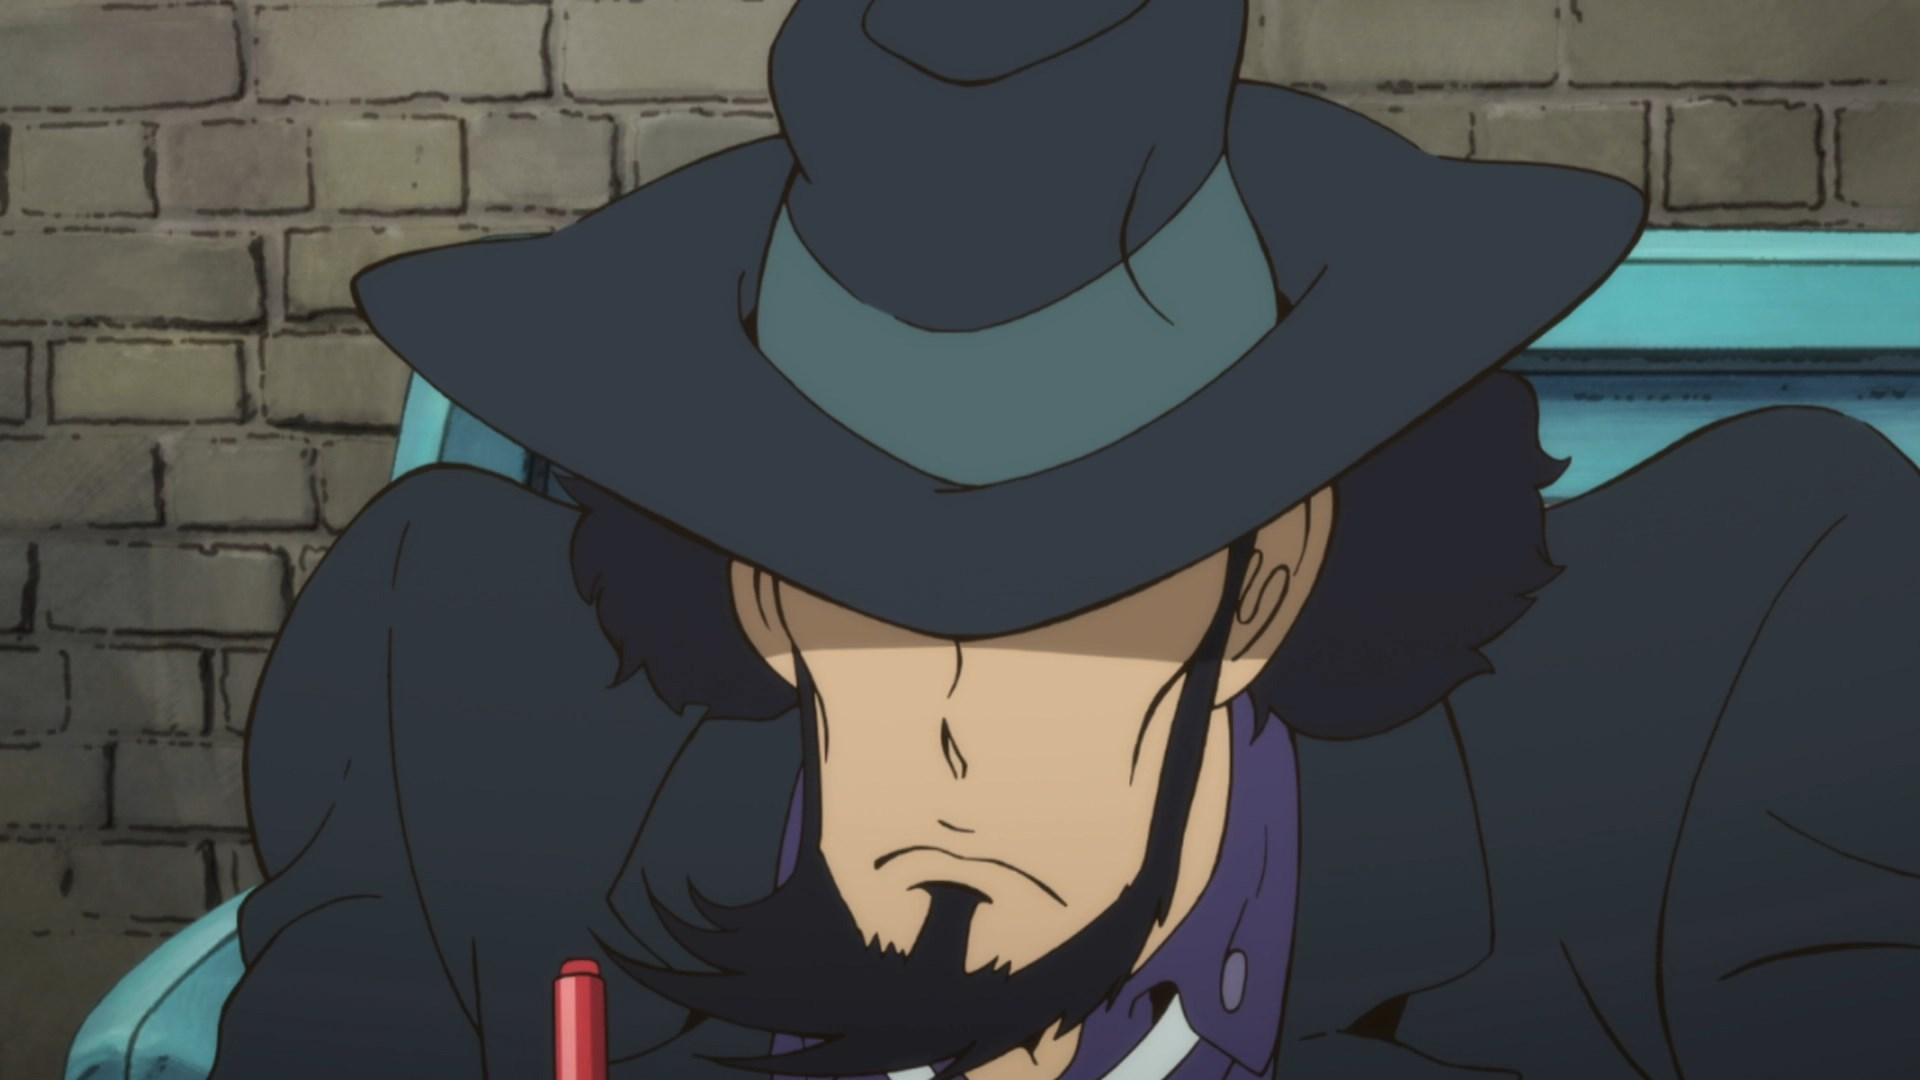 lupin the third part4 22 review  to catch a thief